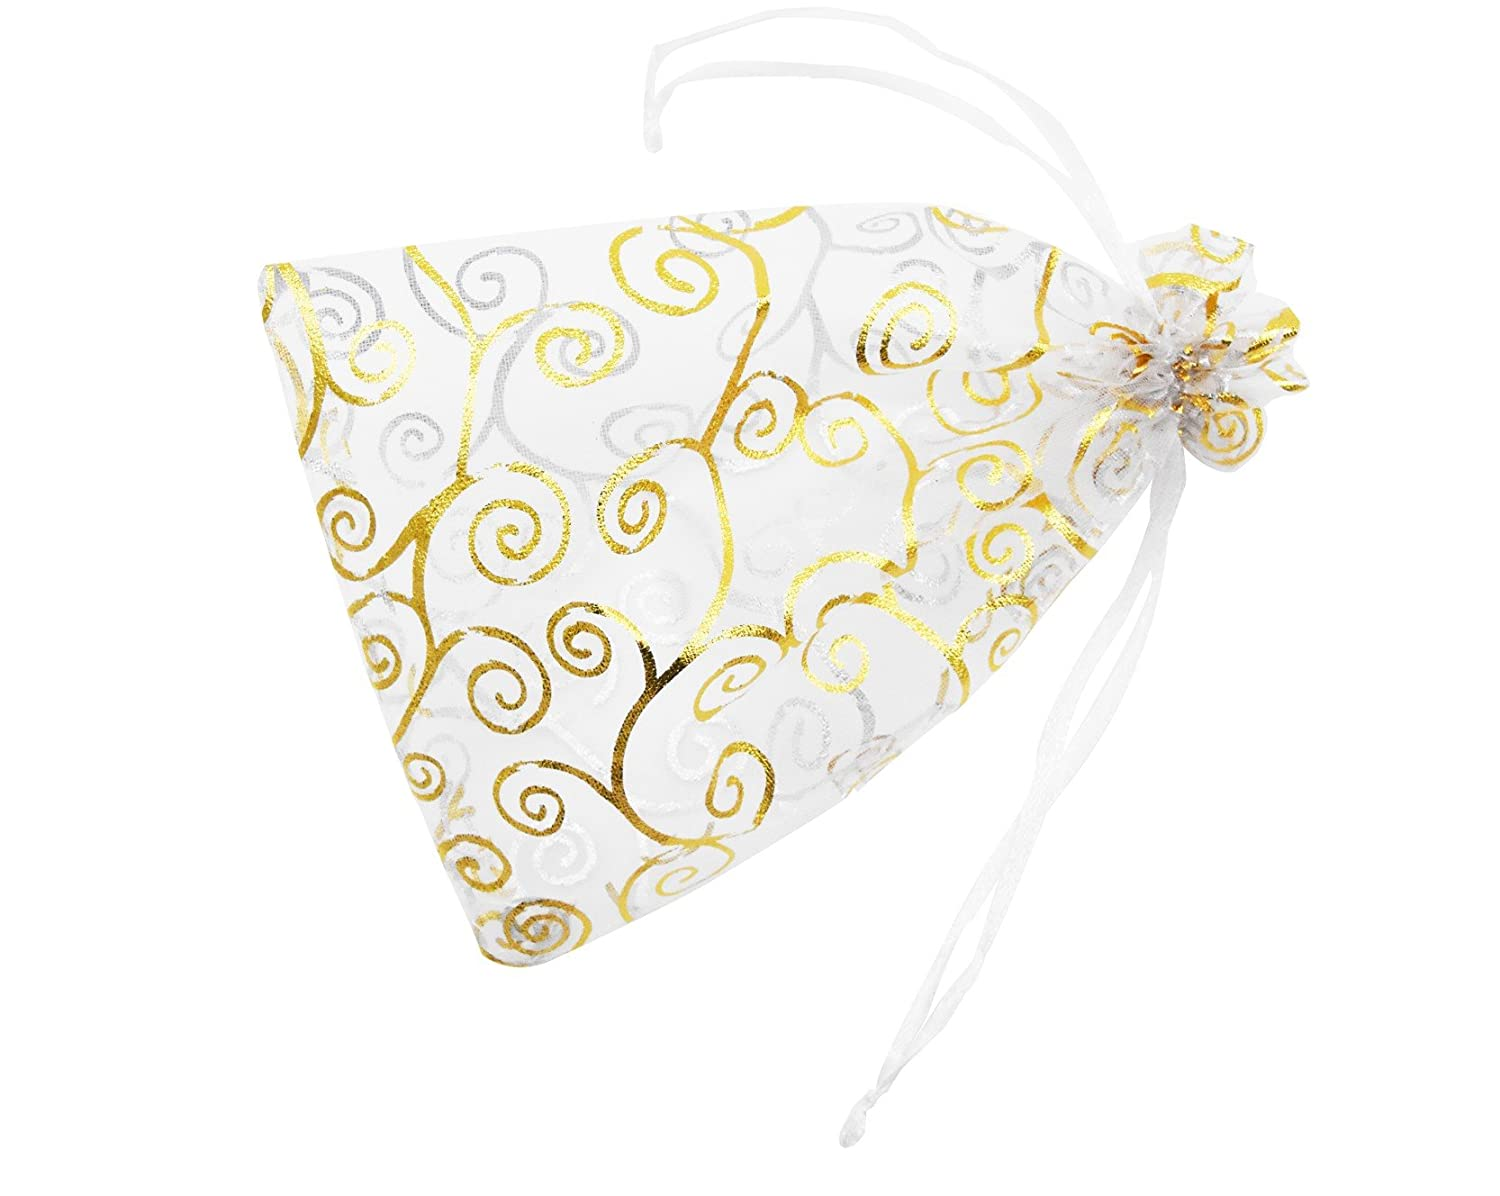 Organza Drawstring Pouches 4x6 Inches 100Pcs for Jewelry Gift Candy Party Wedding Favor Bags(White With Gold Details) Youkwer